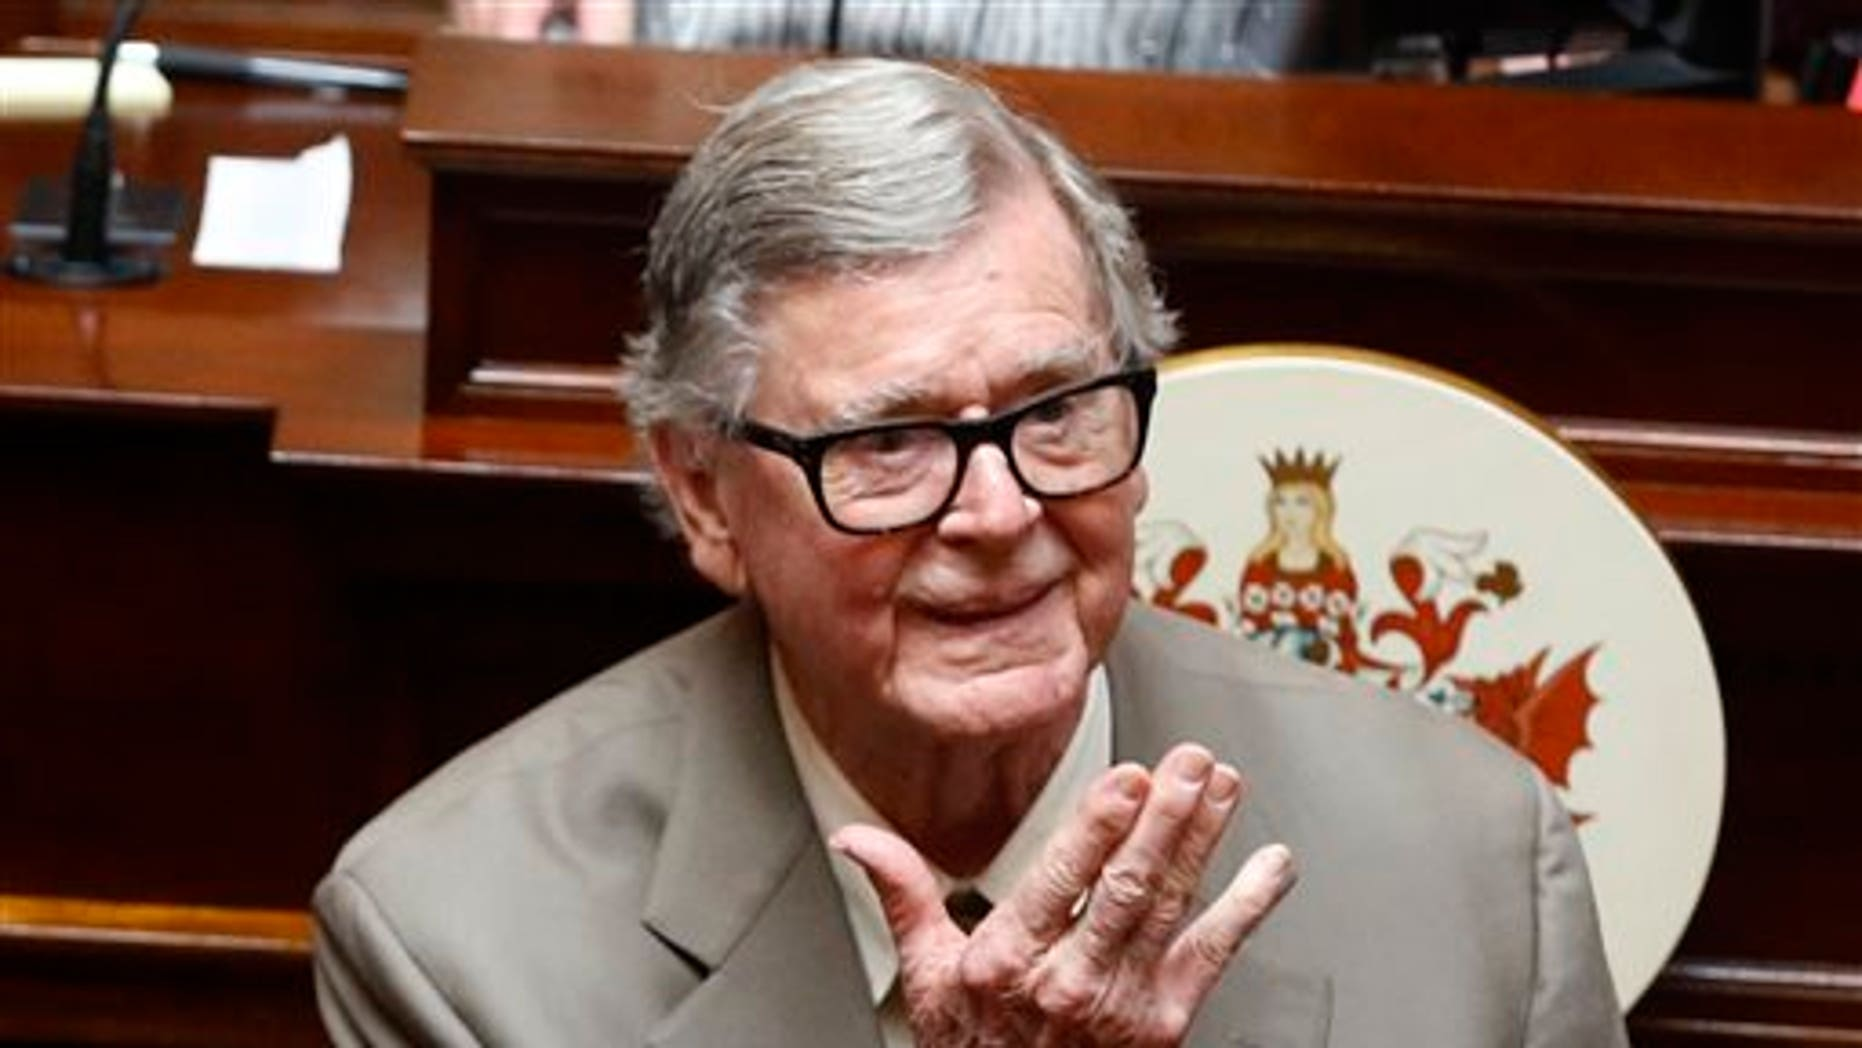 In this Wednesday, April 3, 2013 file photo, author Earl Hamner Jr. blows a kiss to relatives in the gallery as he is honored by the Virginia Senate at the state capitol in Richmond, Va. Hamner died on March 24, 2016. (AP Photo/Richmond Times-Dispatch, Bob Brown)